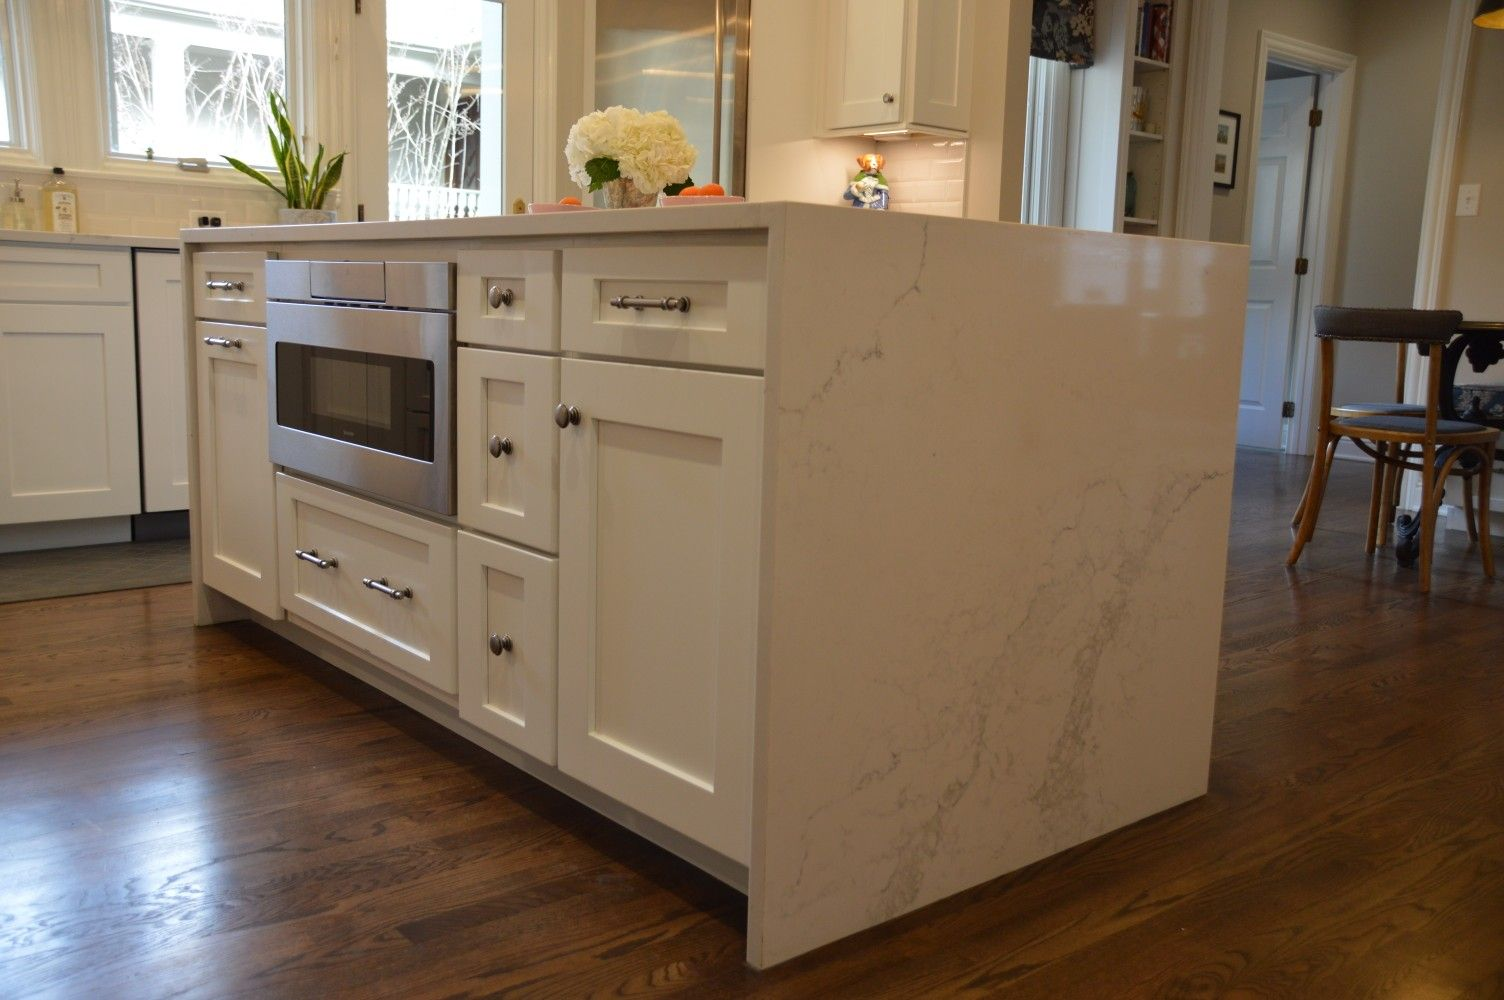 Kitchen Kith Kitchens Cabinetry Homestead Ii Maple Bright White Paint Cabinets Perimeter With Creekstone Finish On H Kitchen Sale Kitchen Paint Cabinets White